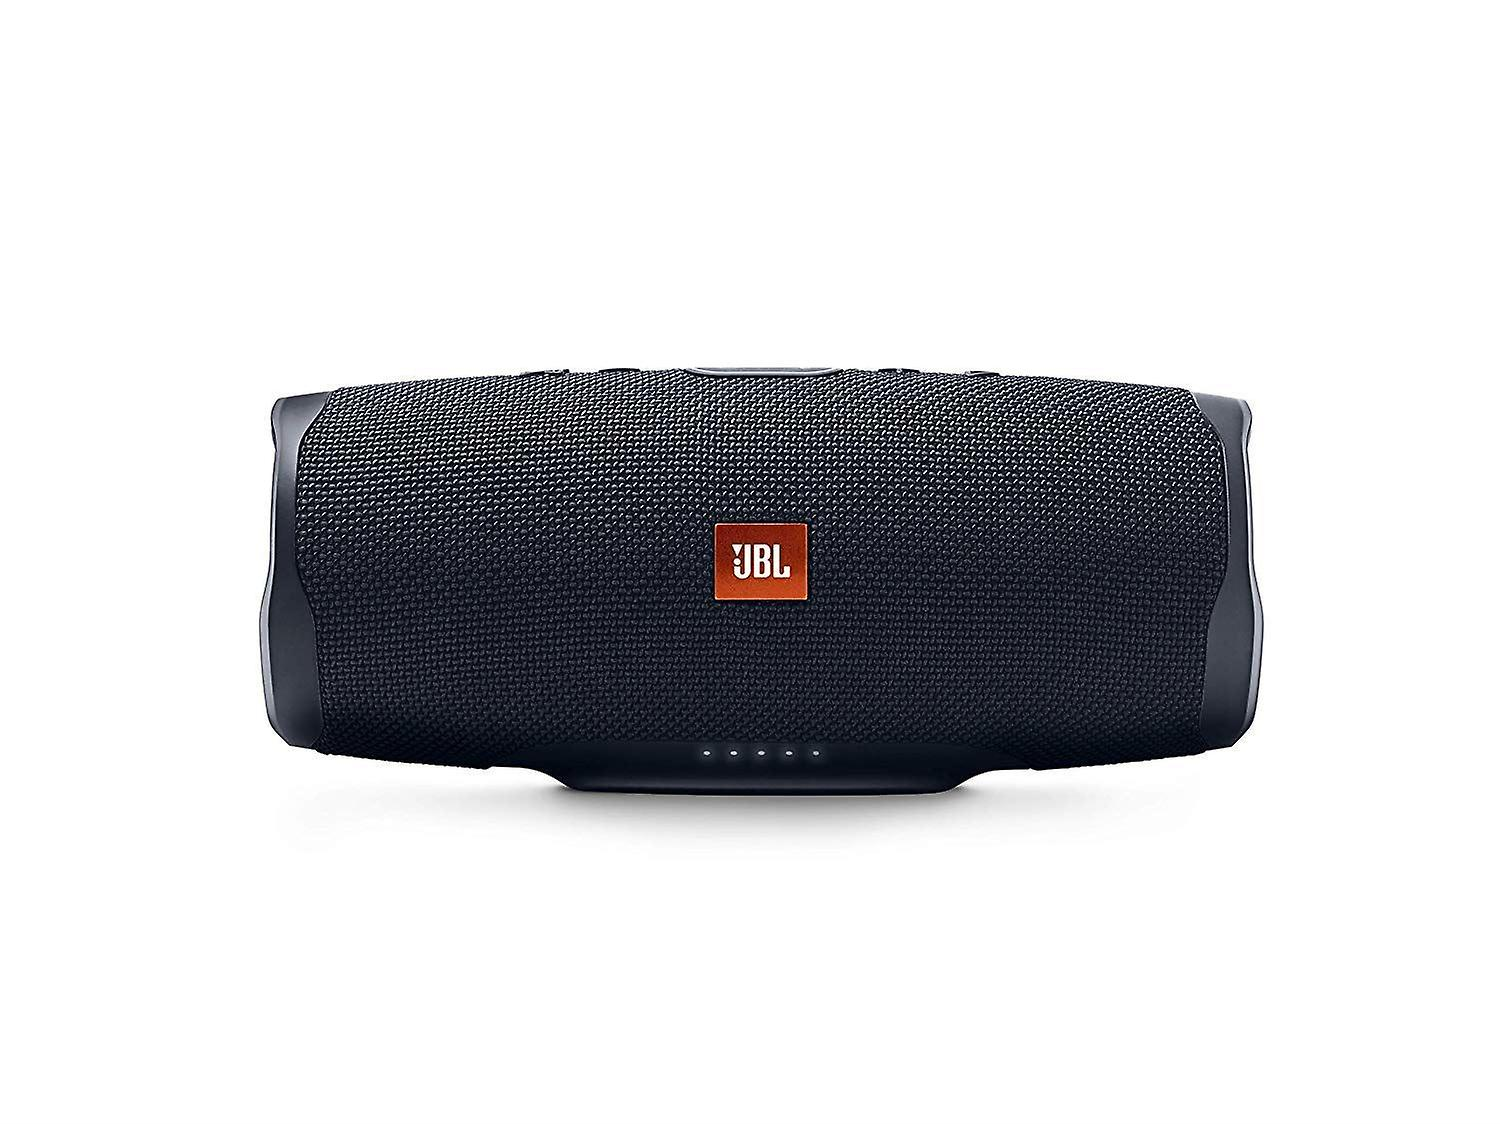 JBL Charge 4 Portable Bluetooth Speaker and Power Bank with Rechargeable Battery Waterproof Black